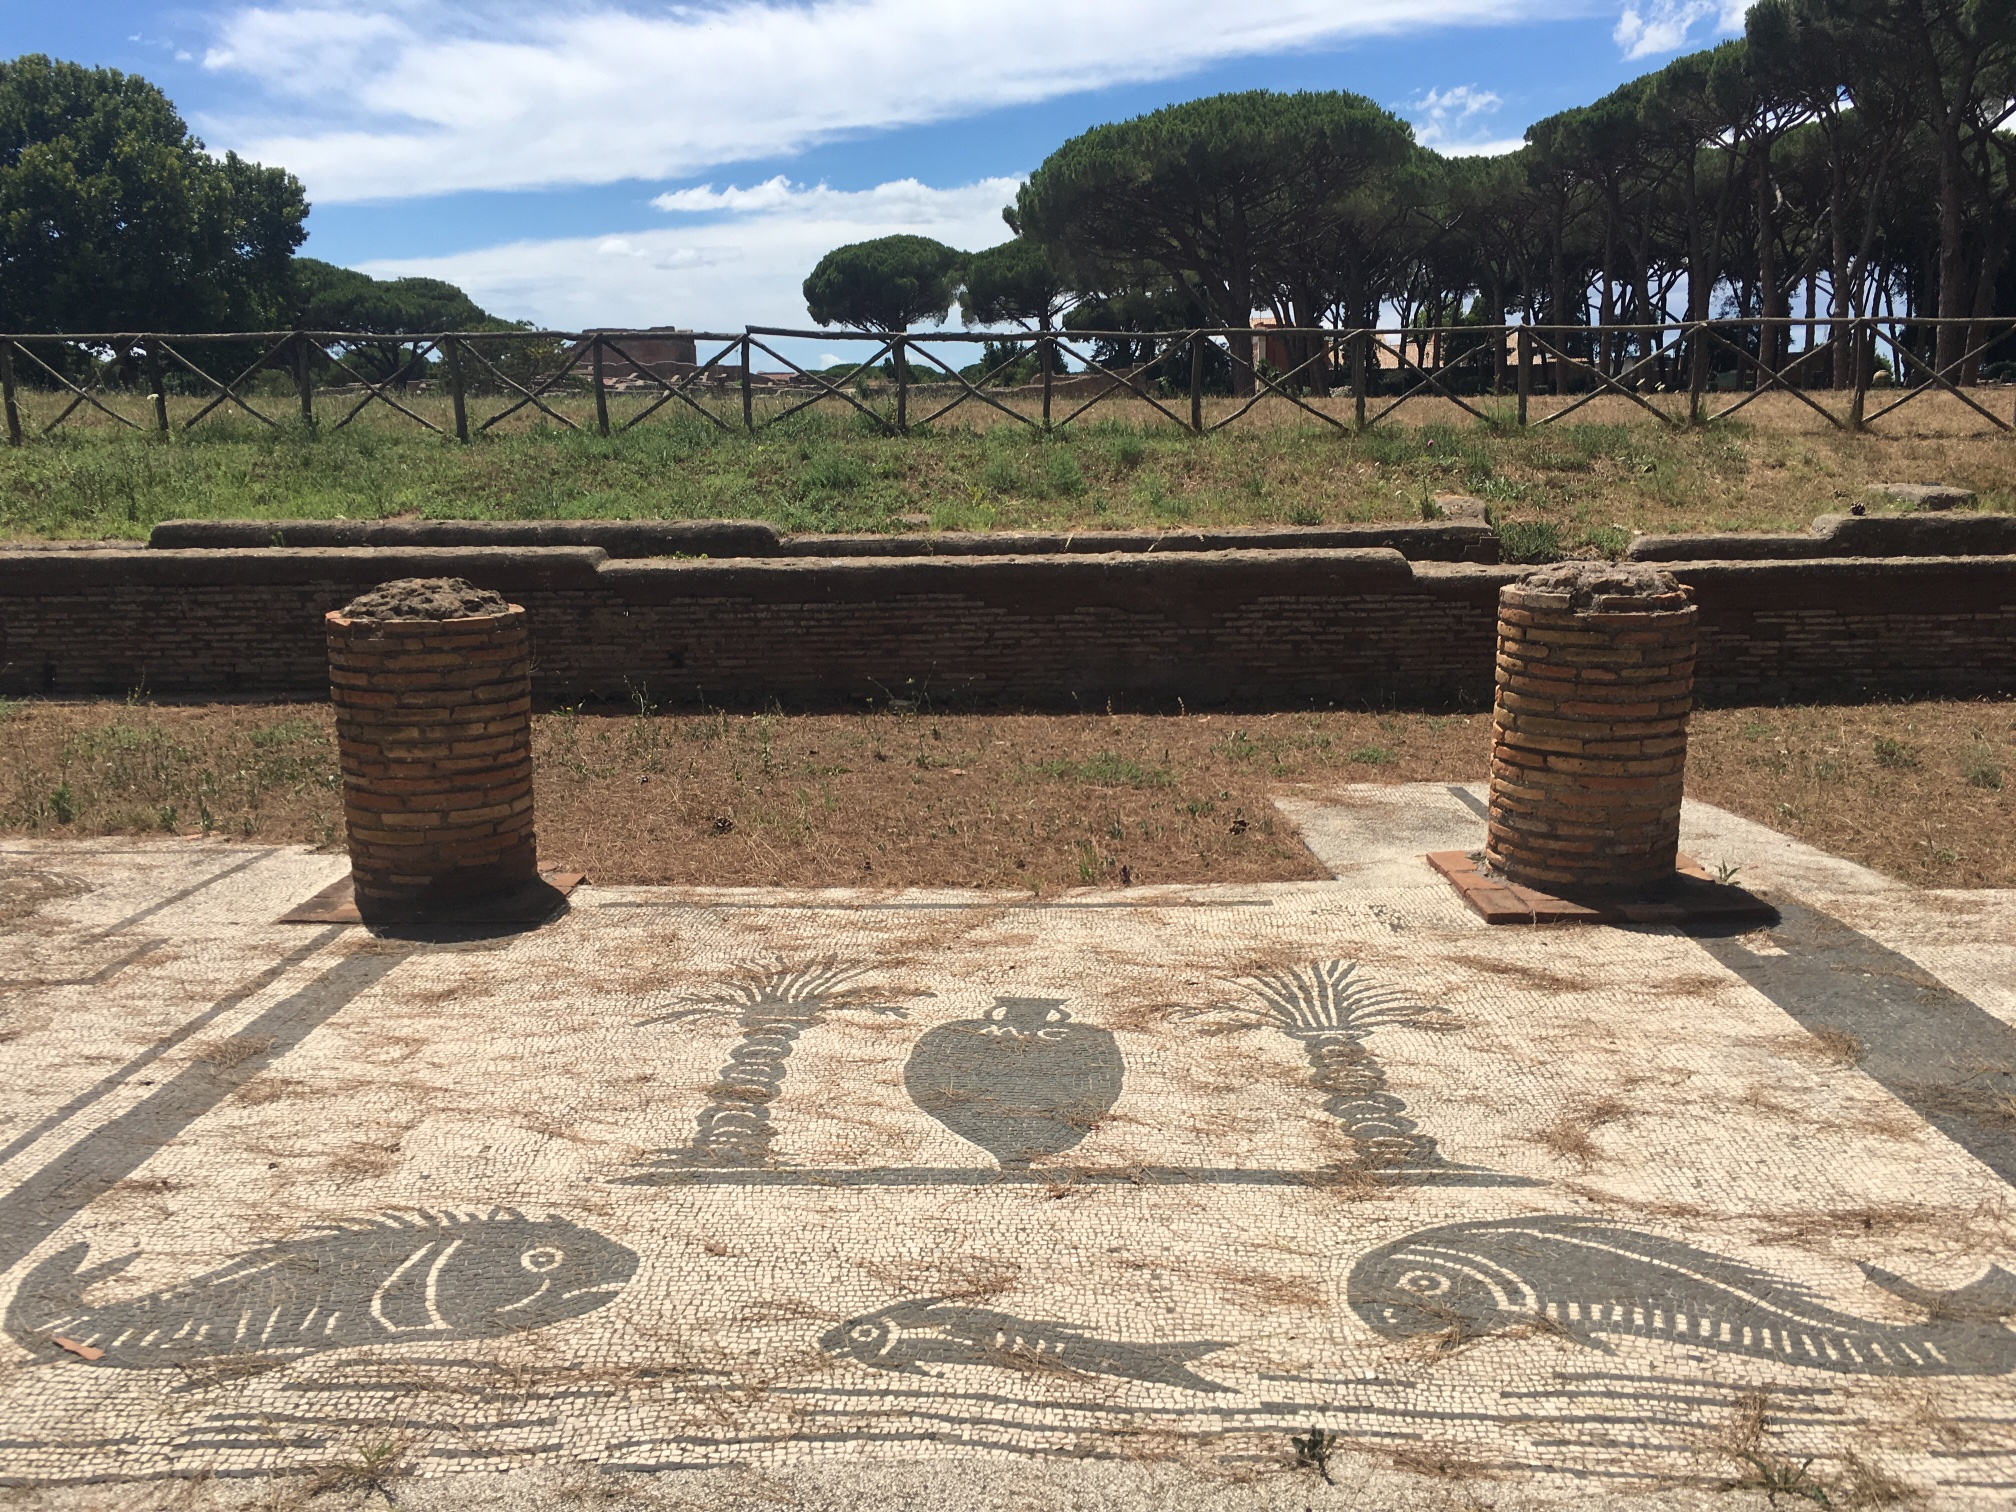 The main square of the town is surrounded by stalls, where the people of Ostia ran their businesses. Each stall had a fresco on the ground in front of it indicating what they did. What did this company do? Sell fish, maybe?